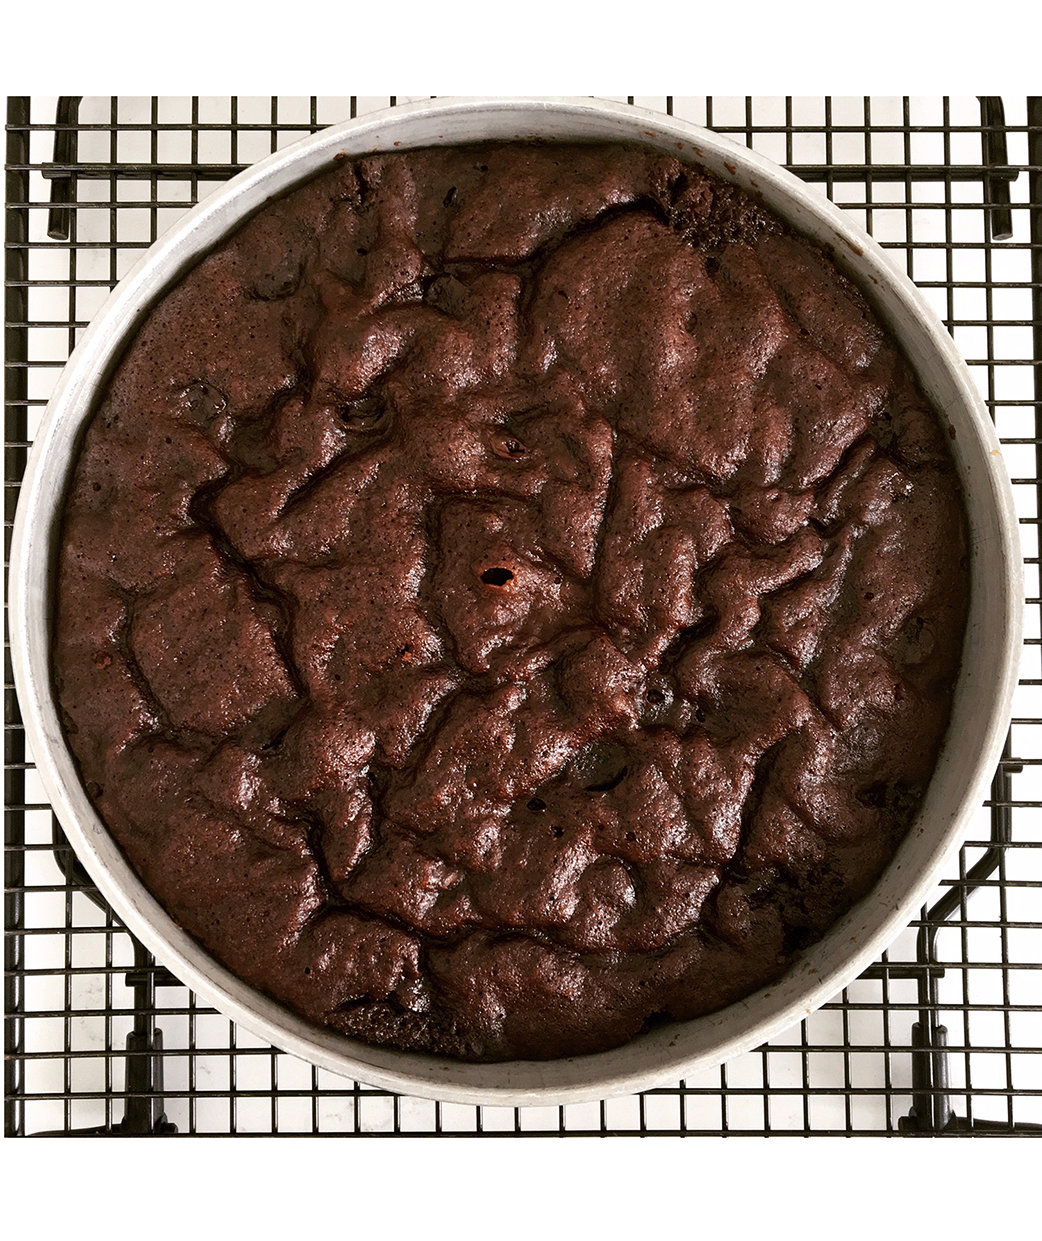 I Made Steamed Brownies on My Stove During a Power Outage—And You Can, Too